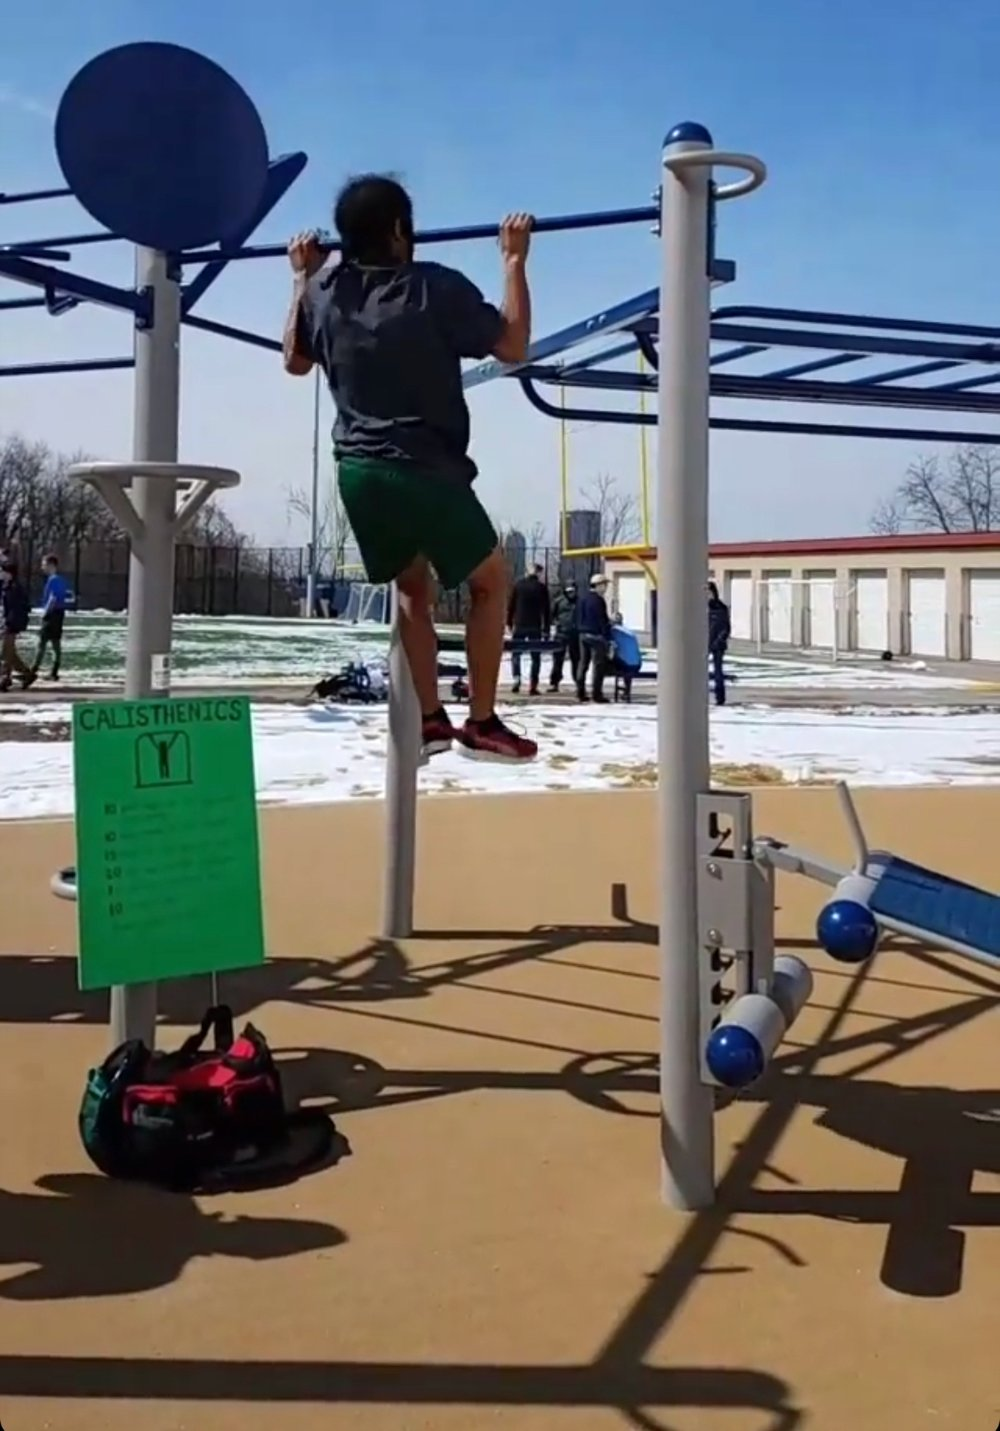 Pull-up bar obstacle